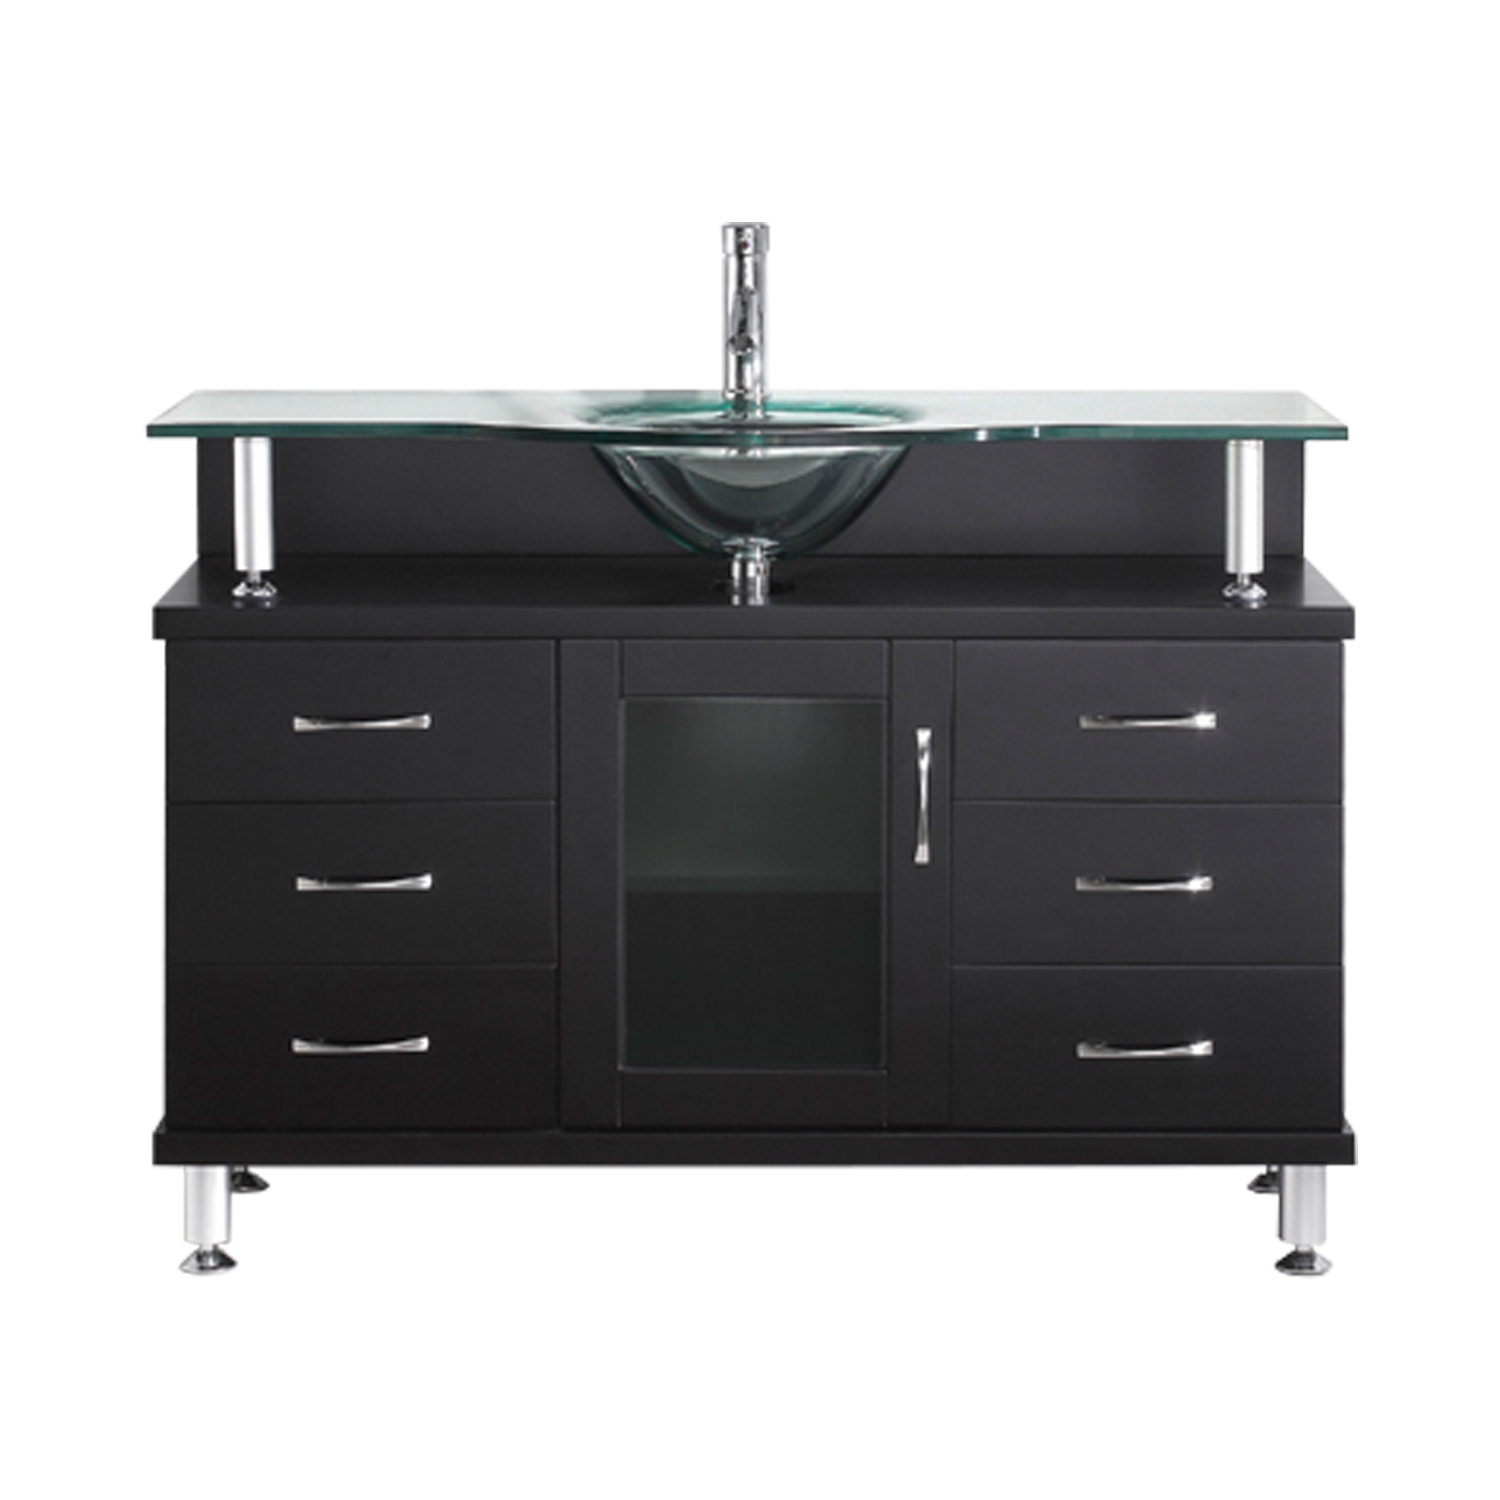 Virtu USA - MS-48-G-ES - Virtu USA Vincente 48 in. Bathroom Vanity Set in Espresso